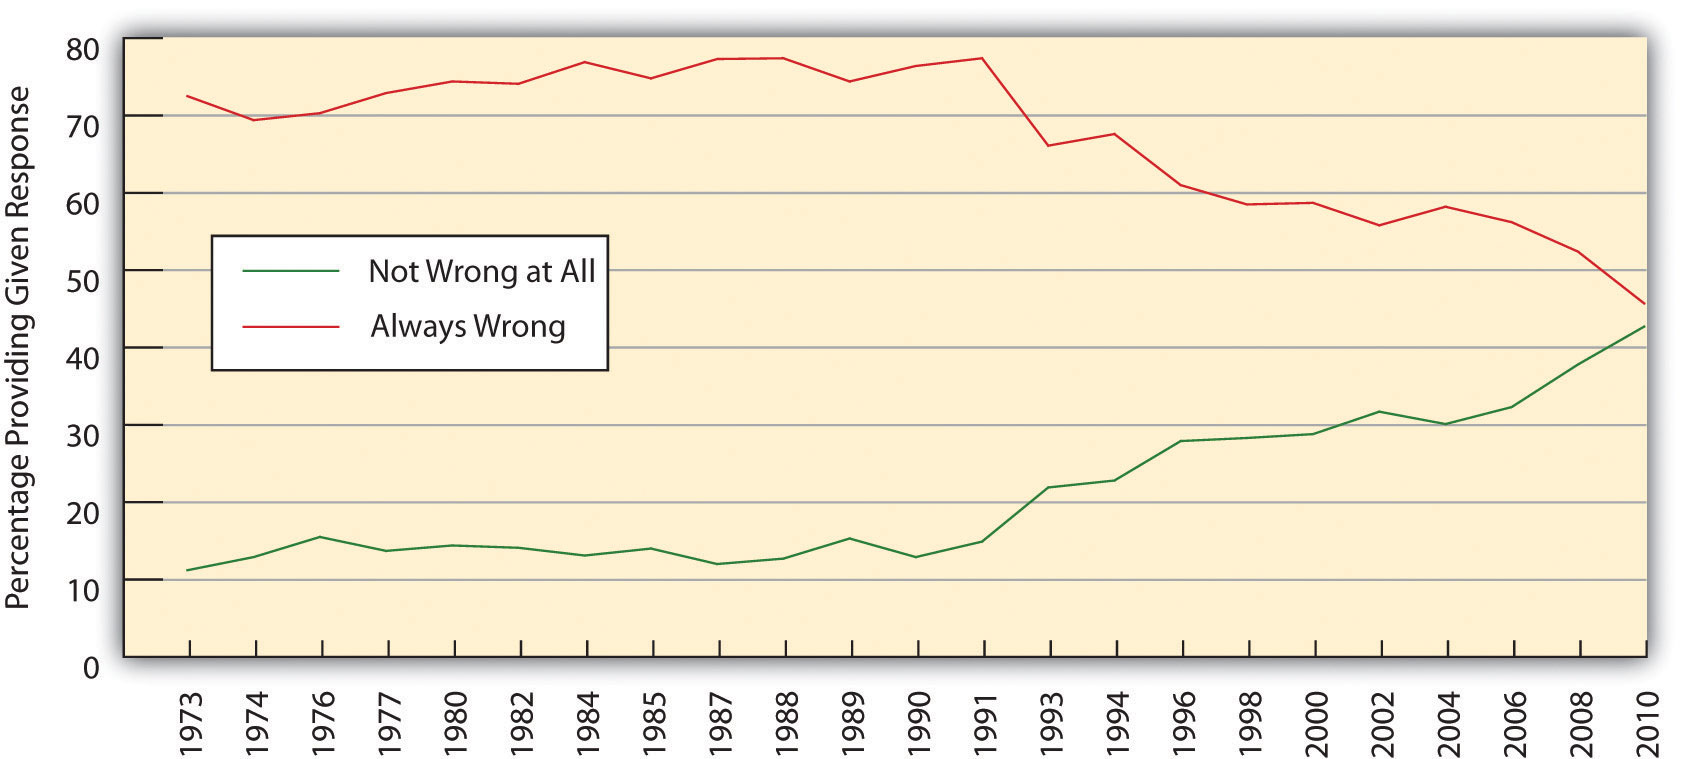 This graph shows the changes in opinion about sexual relations between two adults of the same sex from 1973-2010. It indicates that the opinion it is always wrong has decline, and it is not wrong at all has increased.